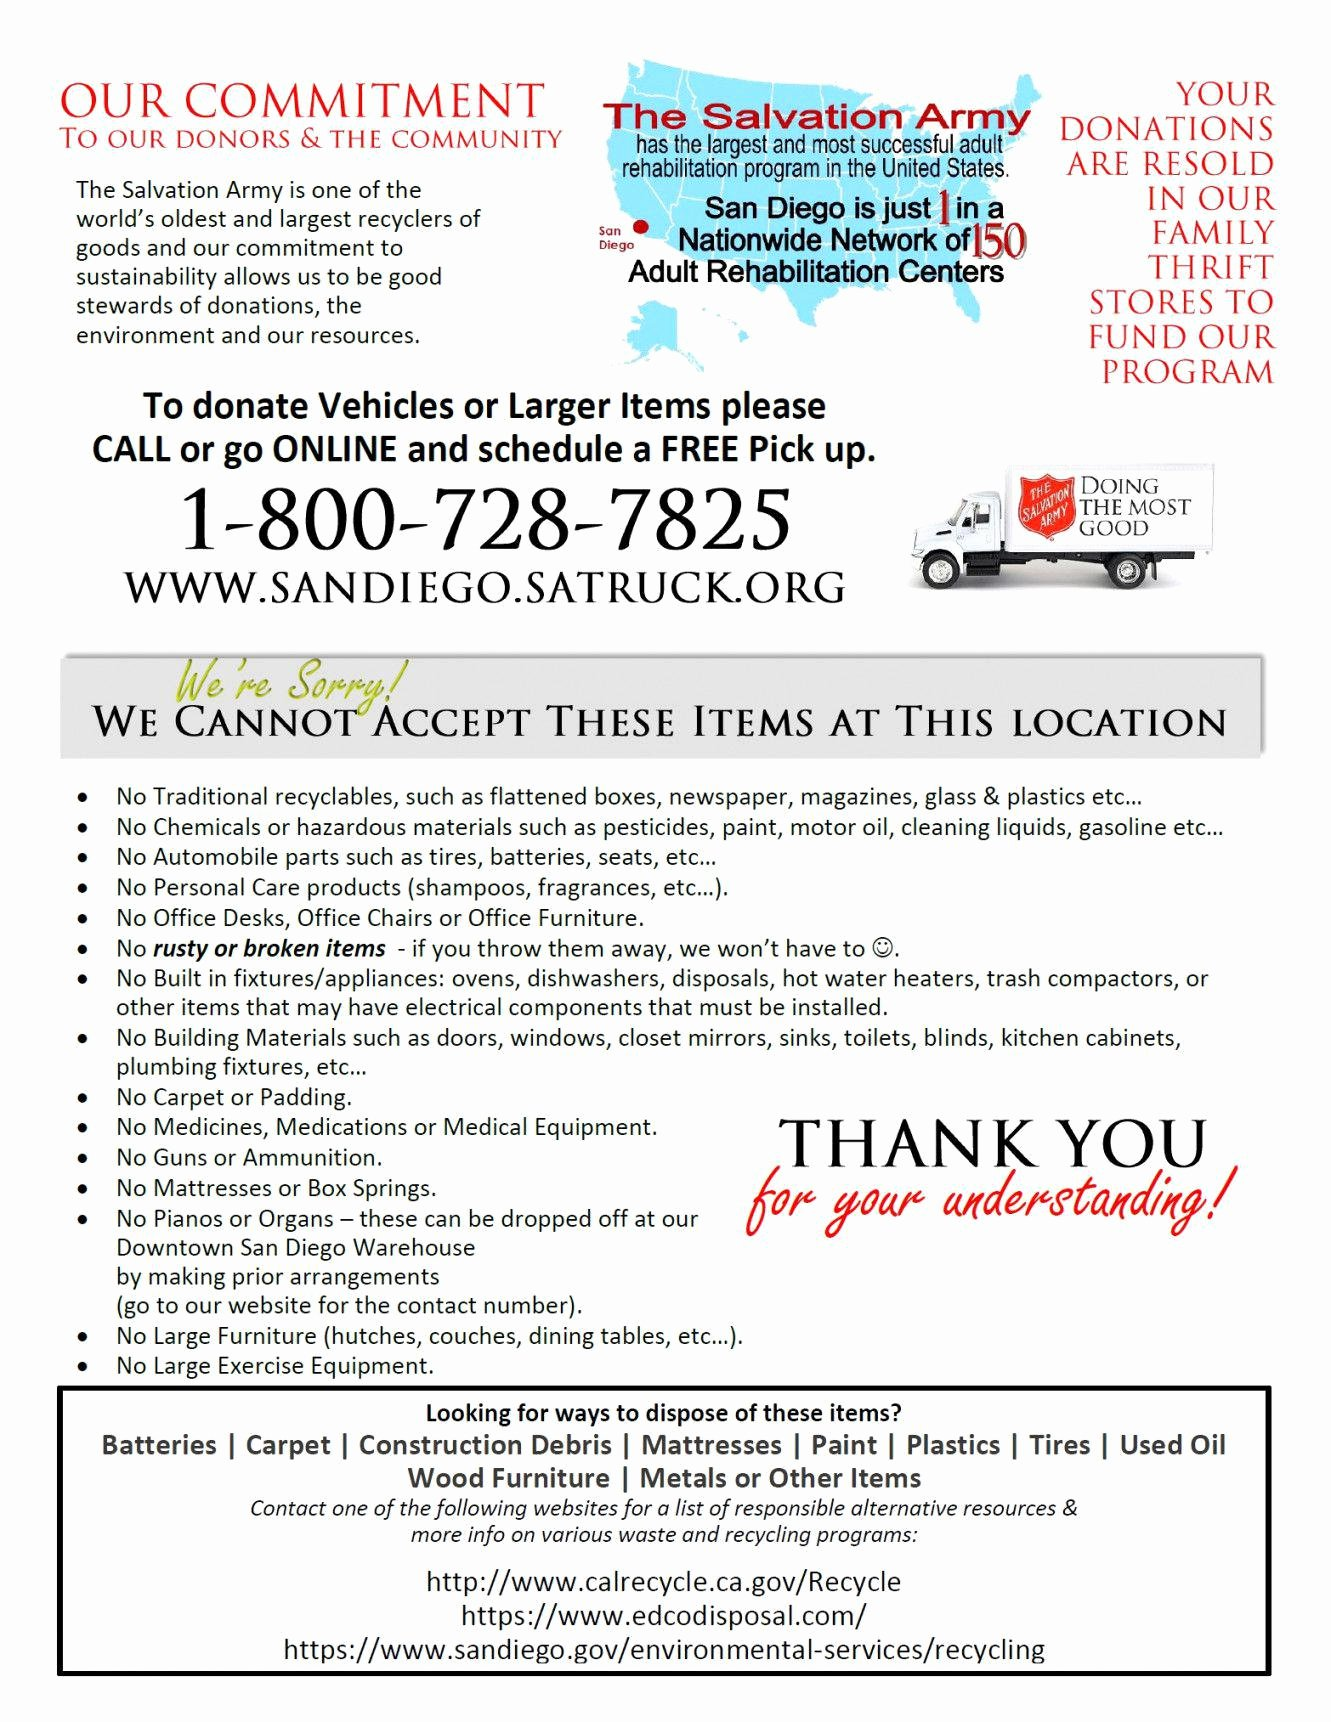 Donation Value Guide 2019 Spreadsheet Best Of Salvation Army Donation Guide Spreadsheet Intended for